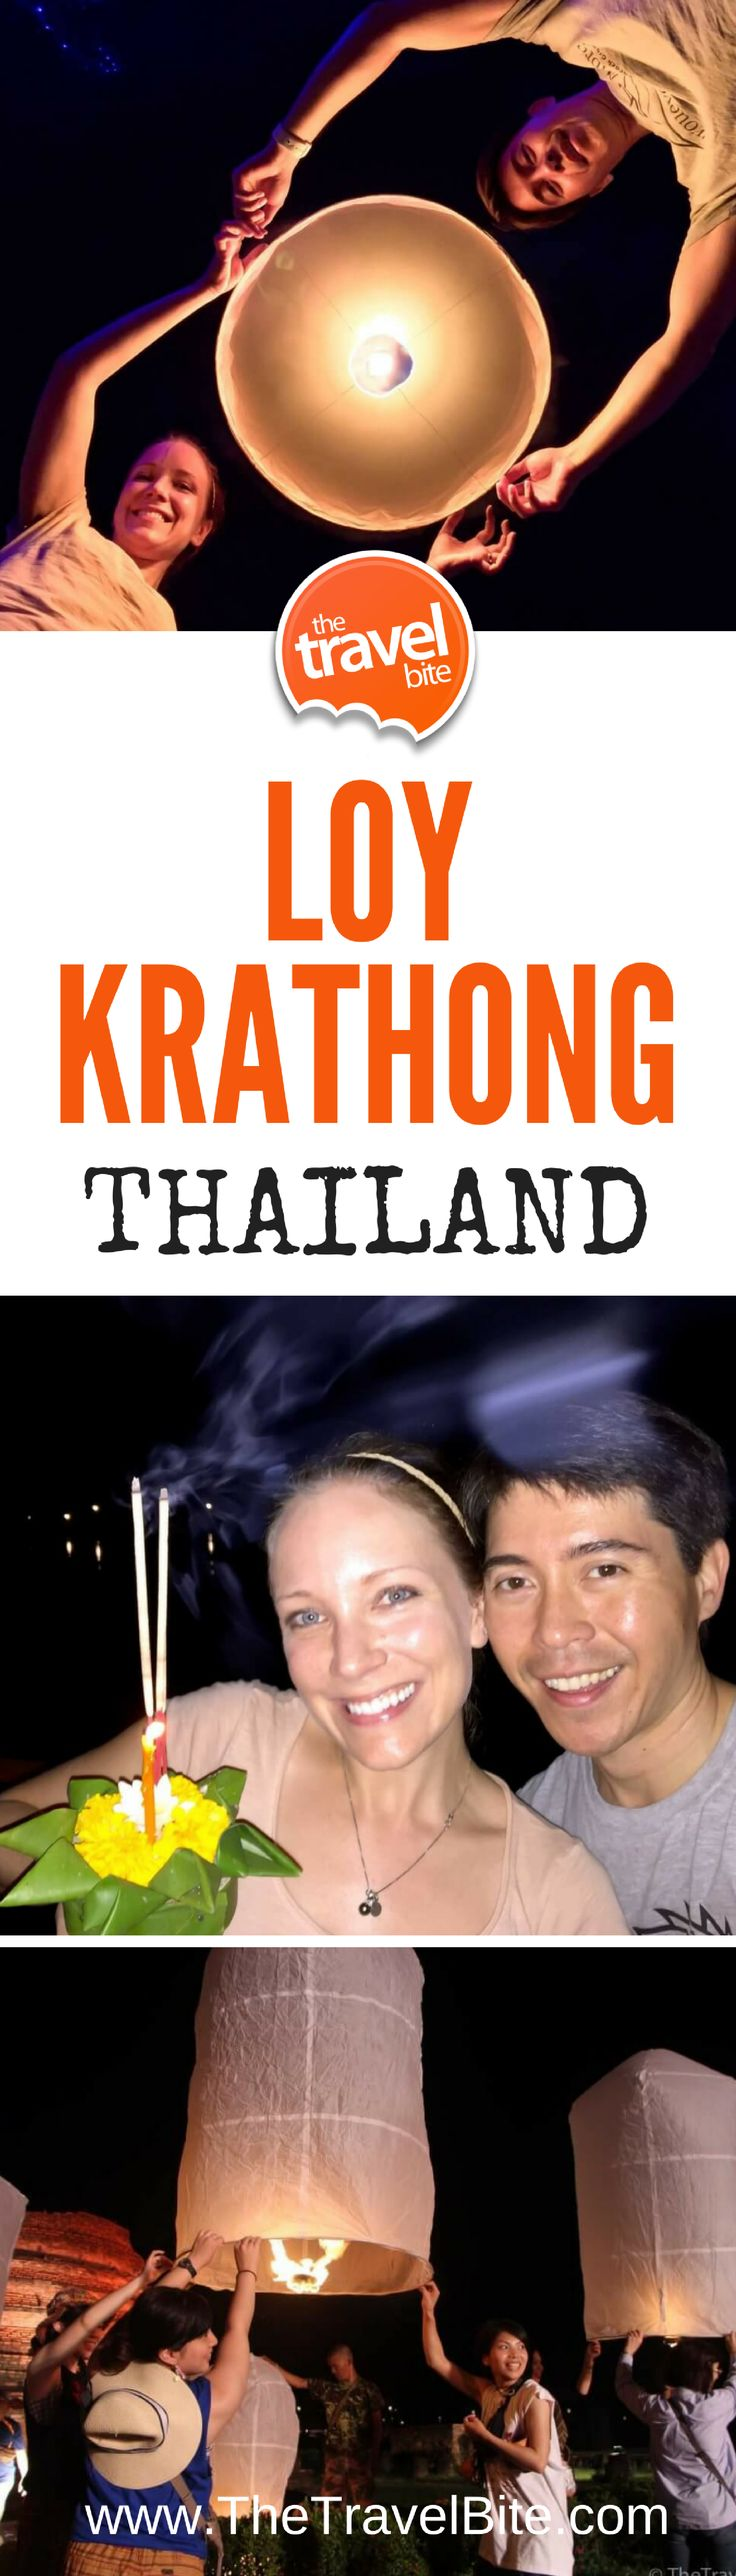 Autumn is a great time of year to visit Thailand as the tropical weather is a bit more mild and there's a sense of magic in the air with two local festivals:  Loy Krathong and Yi Peng.